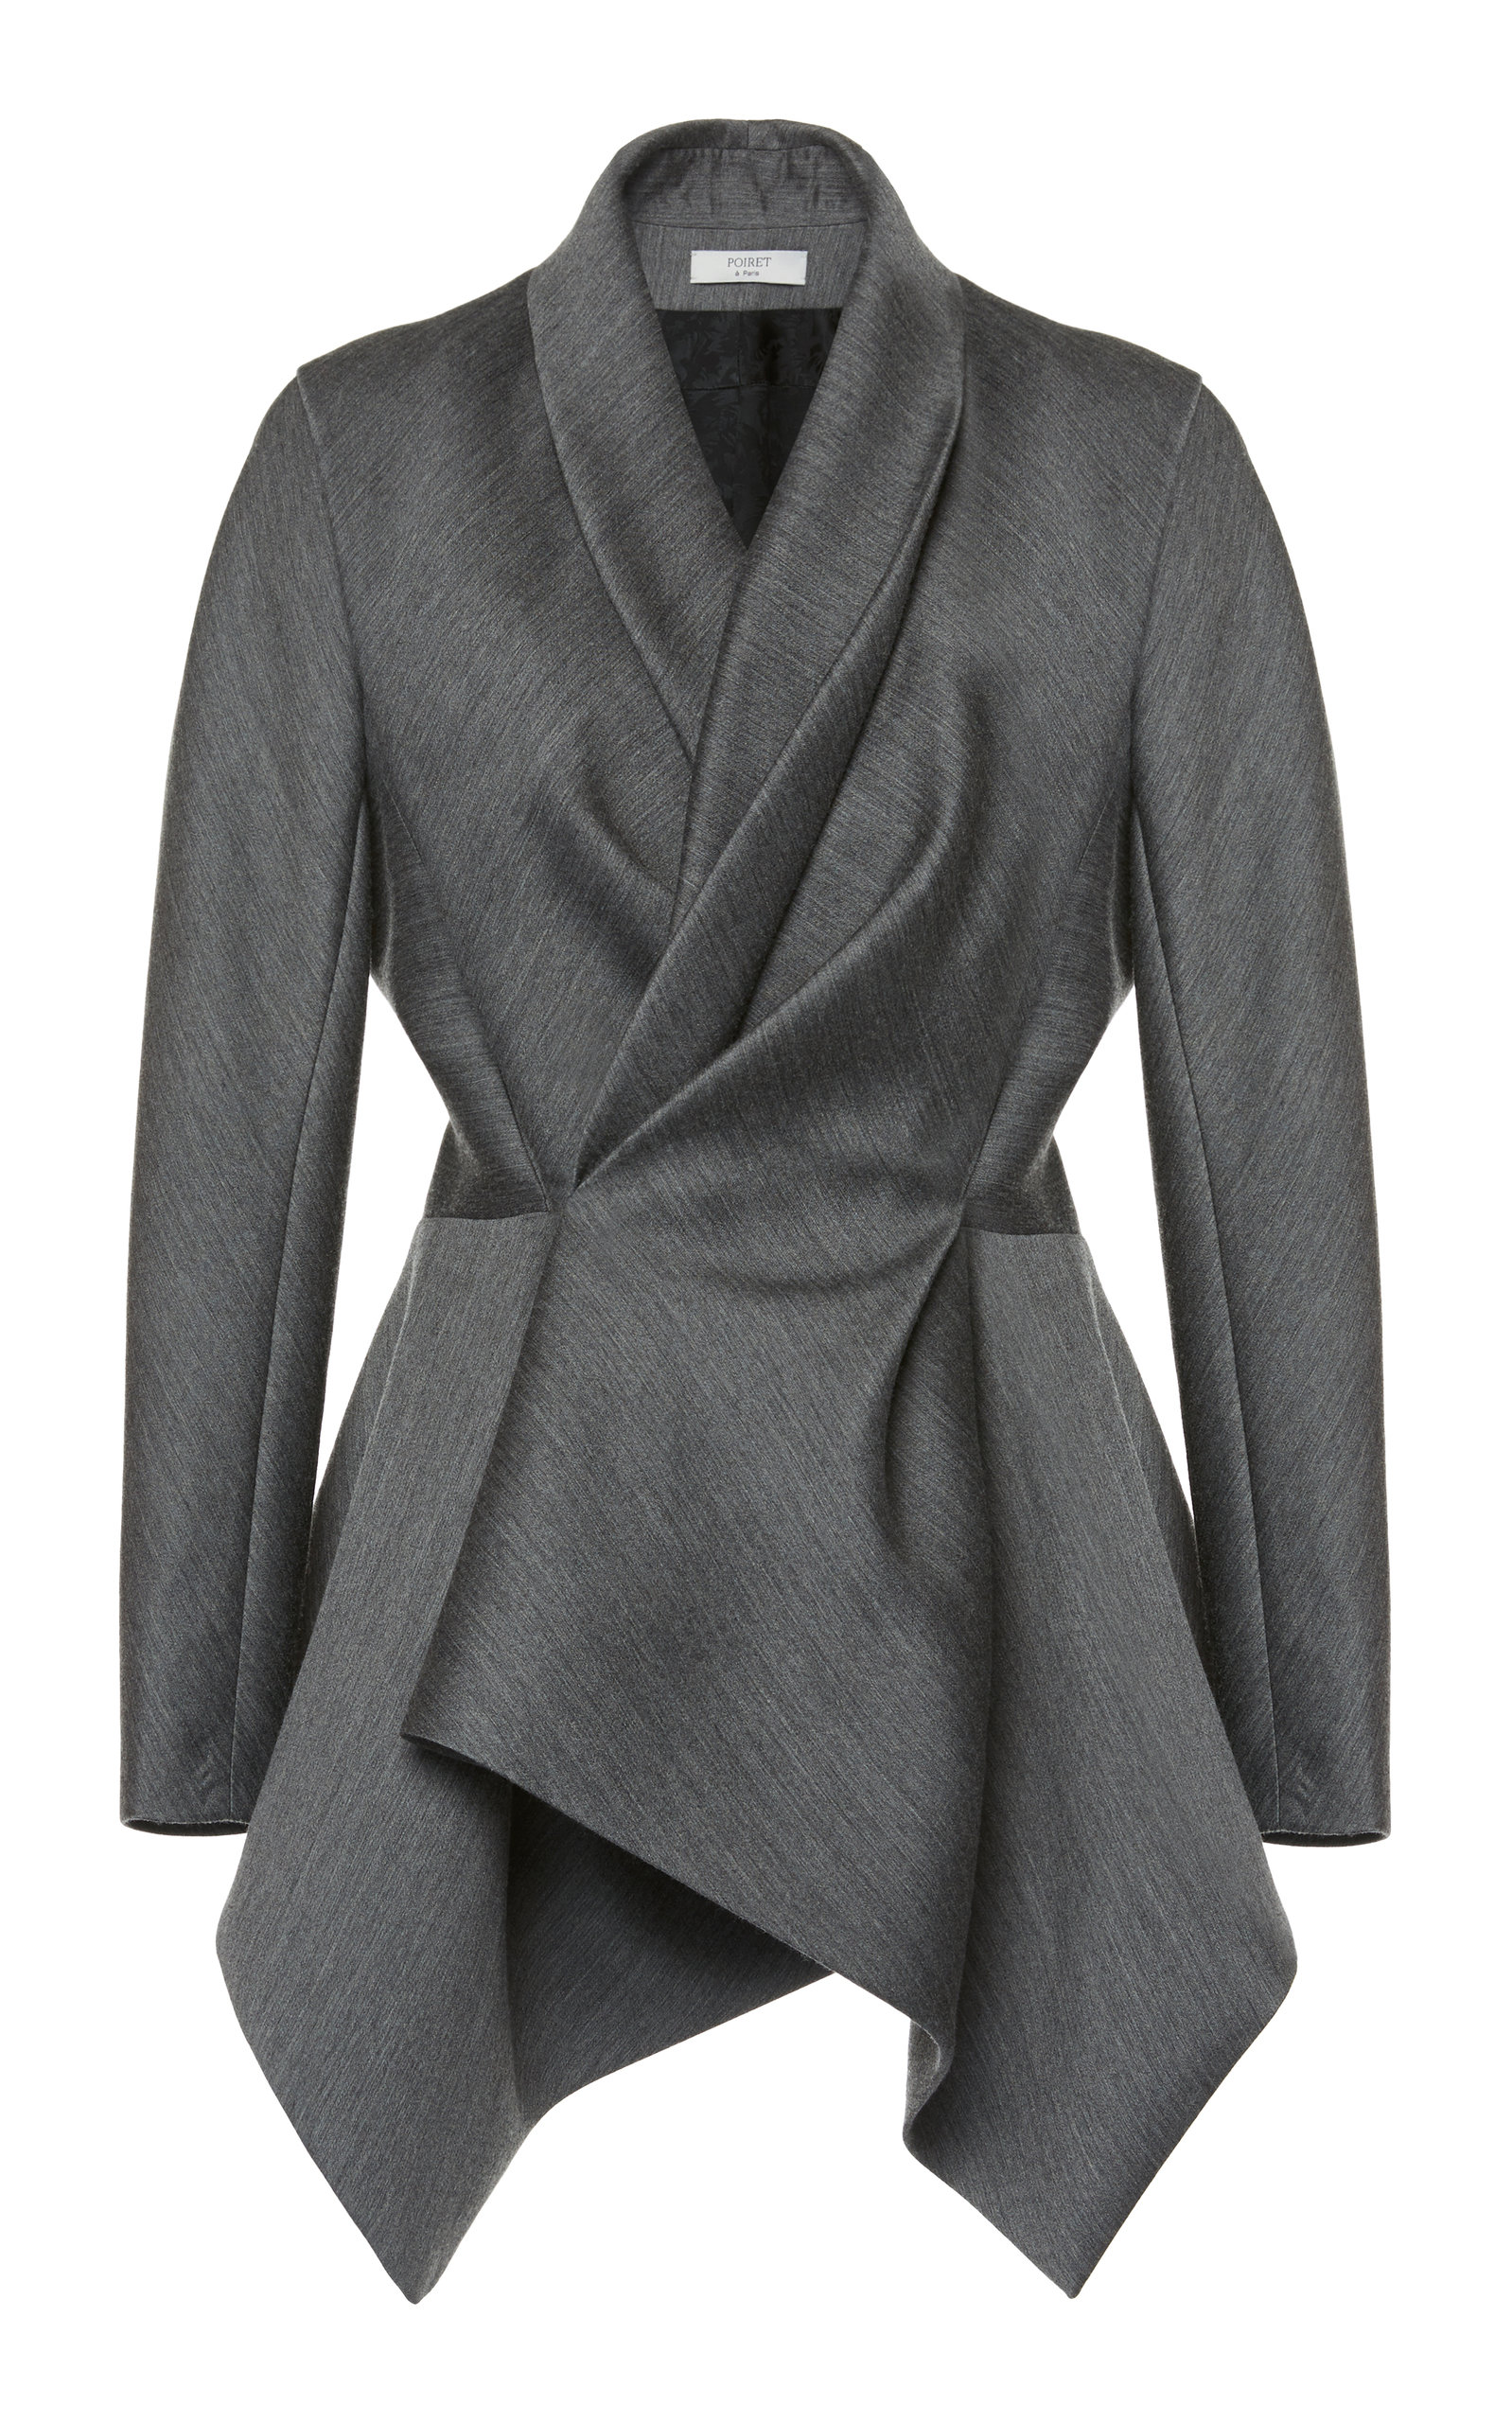 from wool jacket soulclothing products elmatomicdrapedcoat coat blend elm lining blk blush atomic with waterfall drapes made draped co is a nz